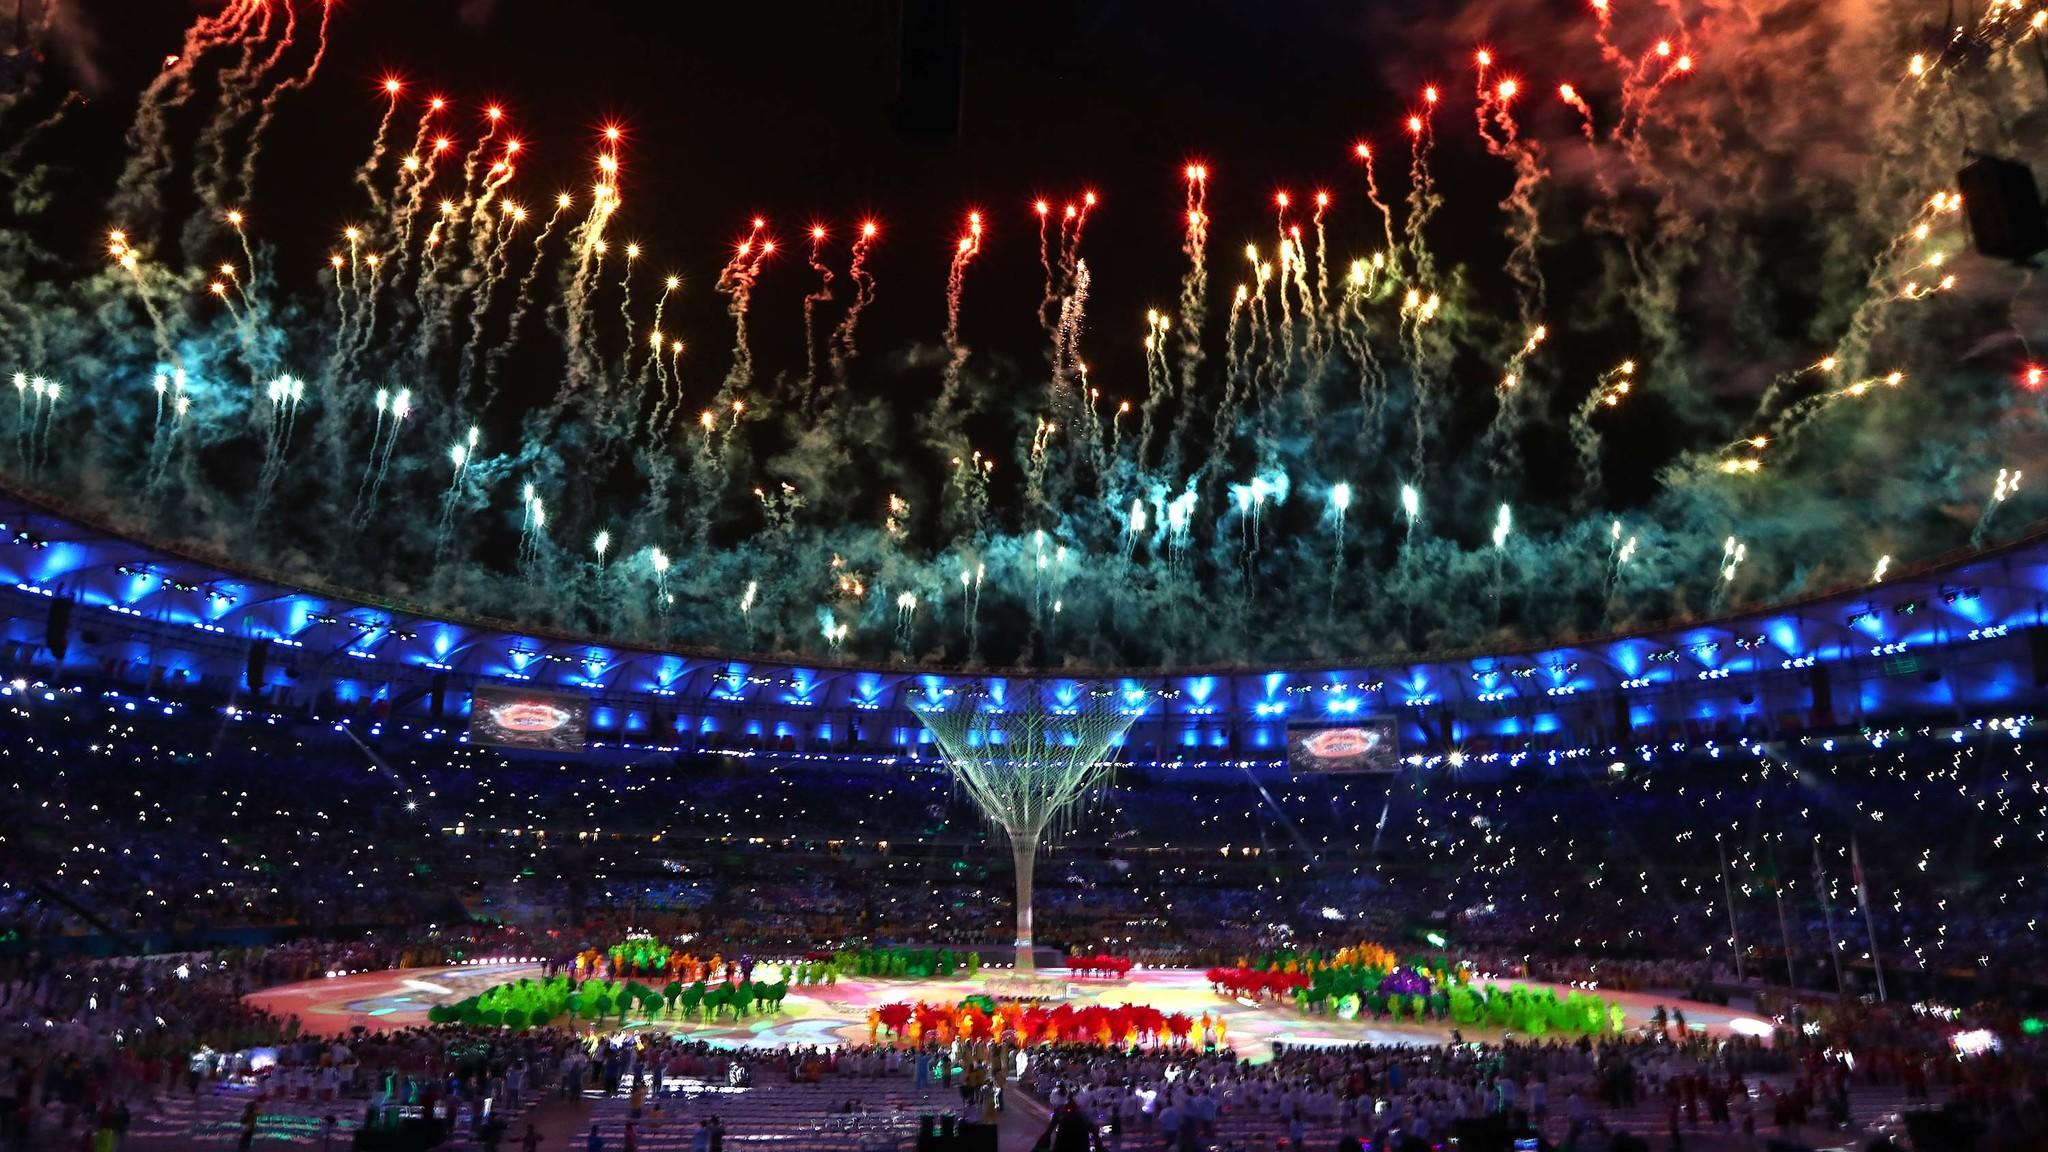 Fireworks explode during the Rio 2016 closing ceremony. (Robert Gauthier / Los Angeles Times)